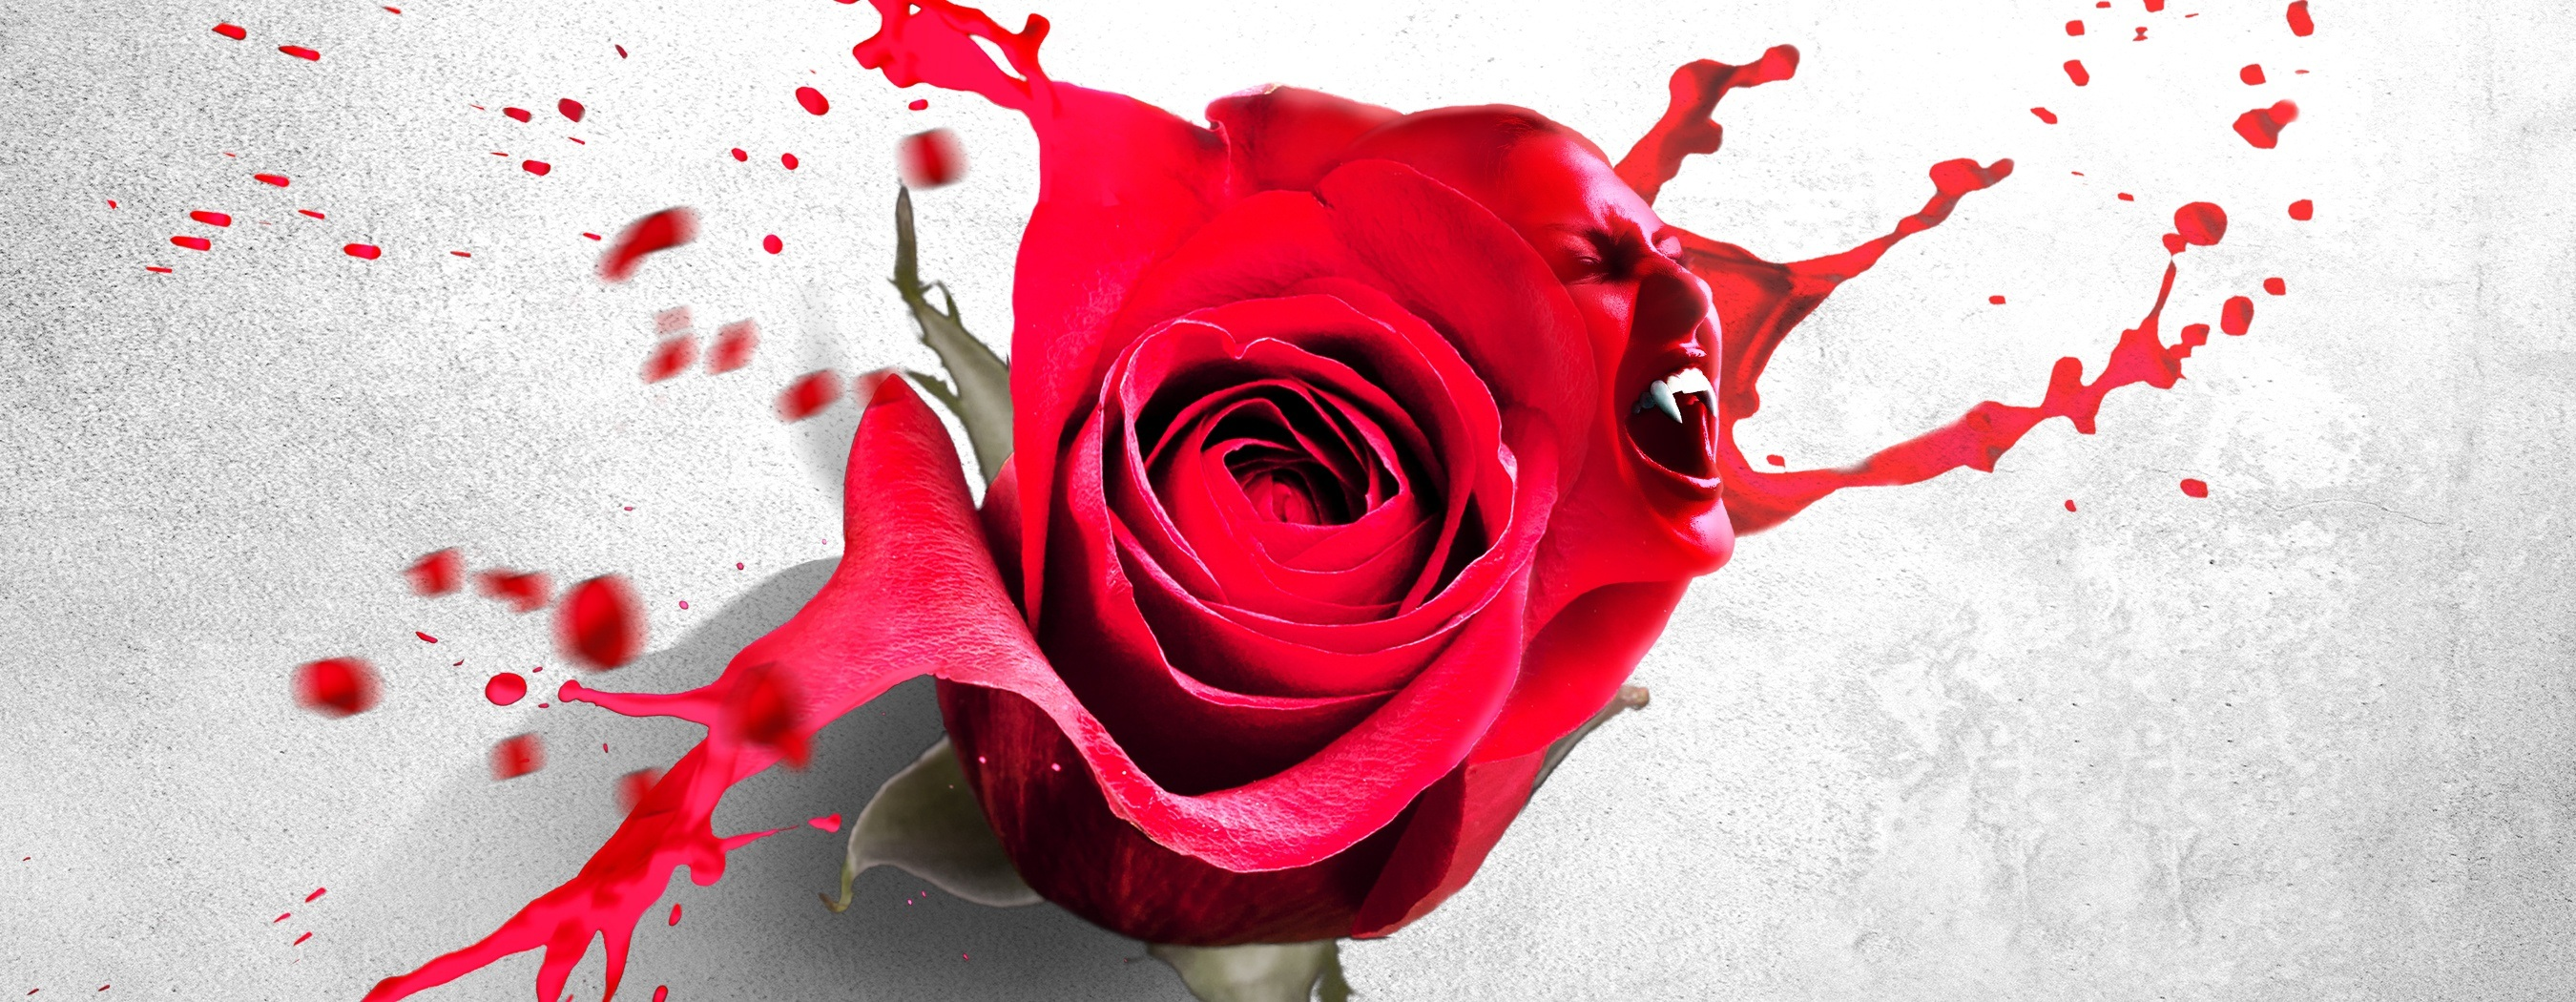 A blood spattered rose